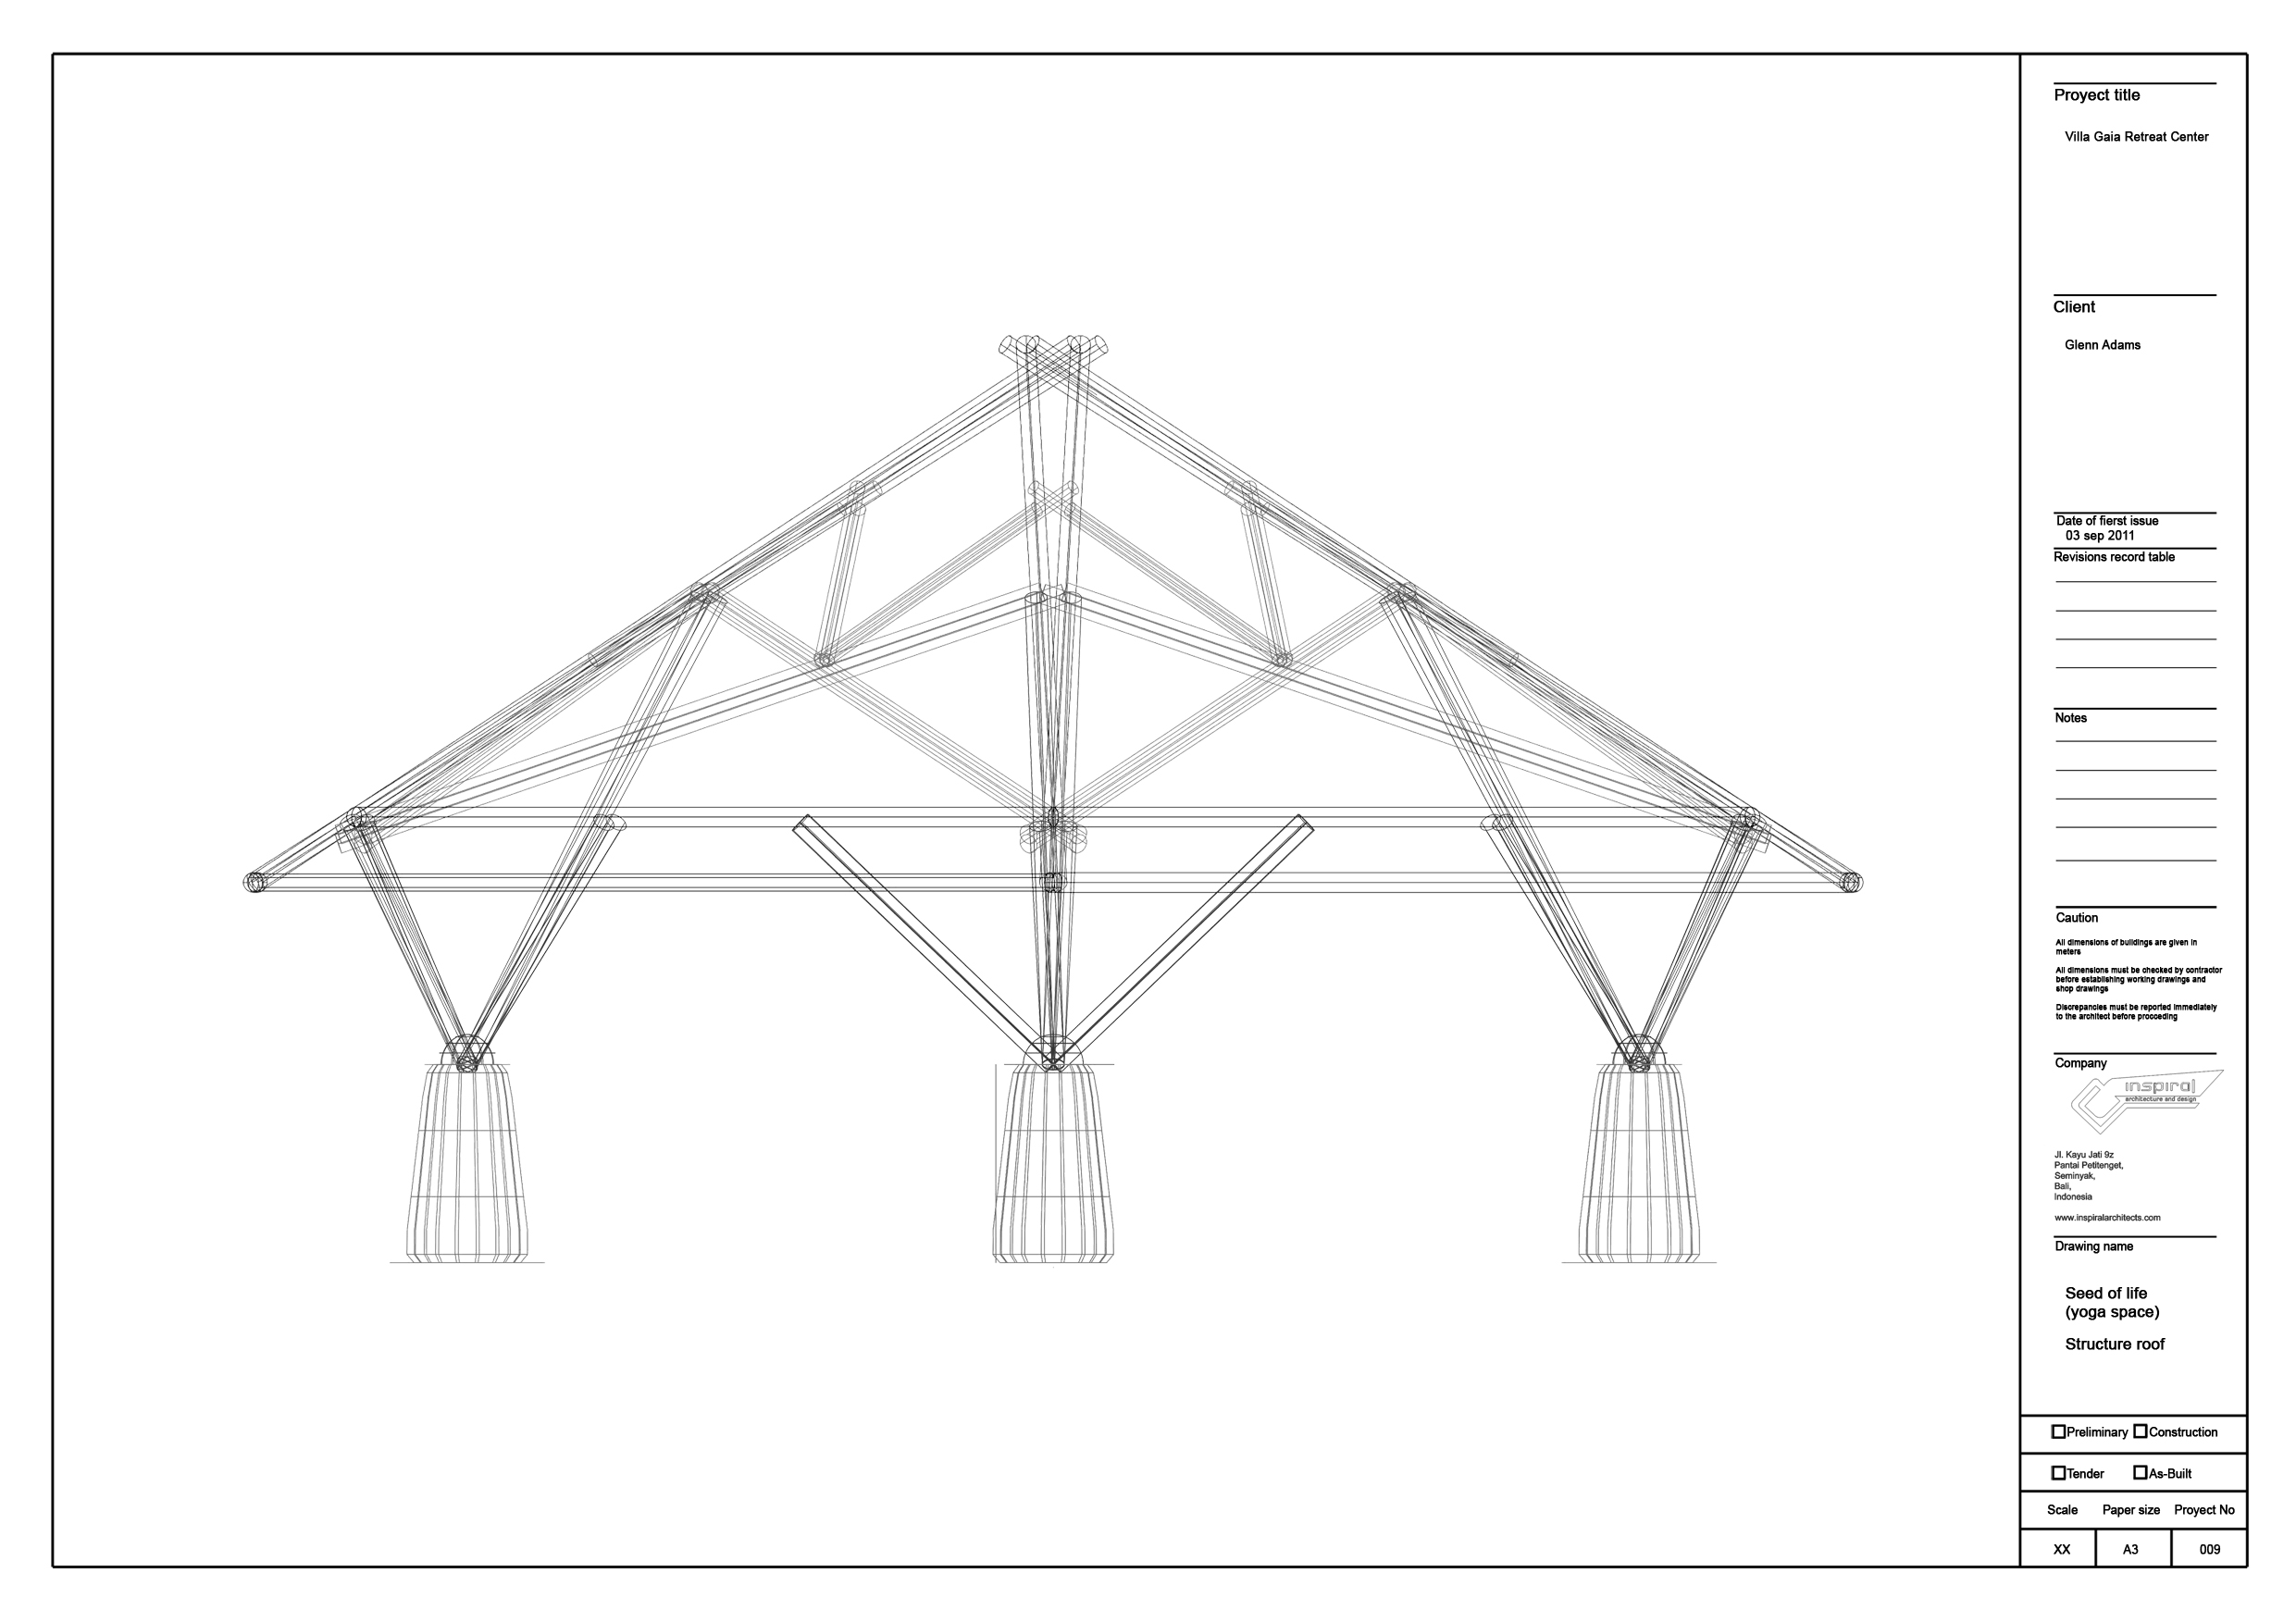 12 seed of life (yoga space)structure roof copia 3.jpg